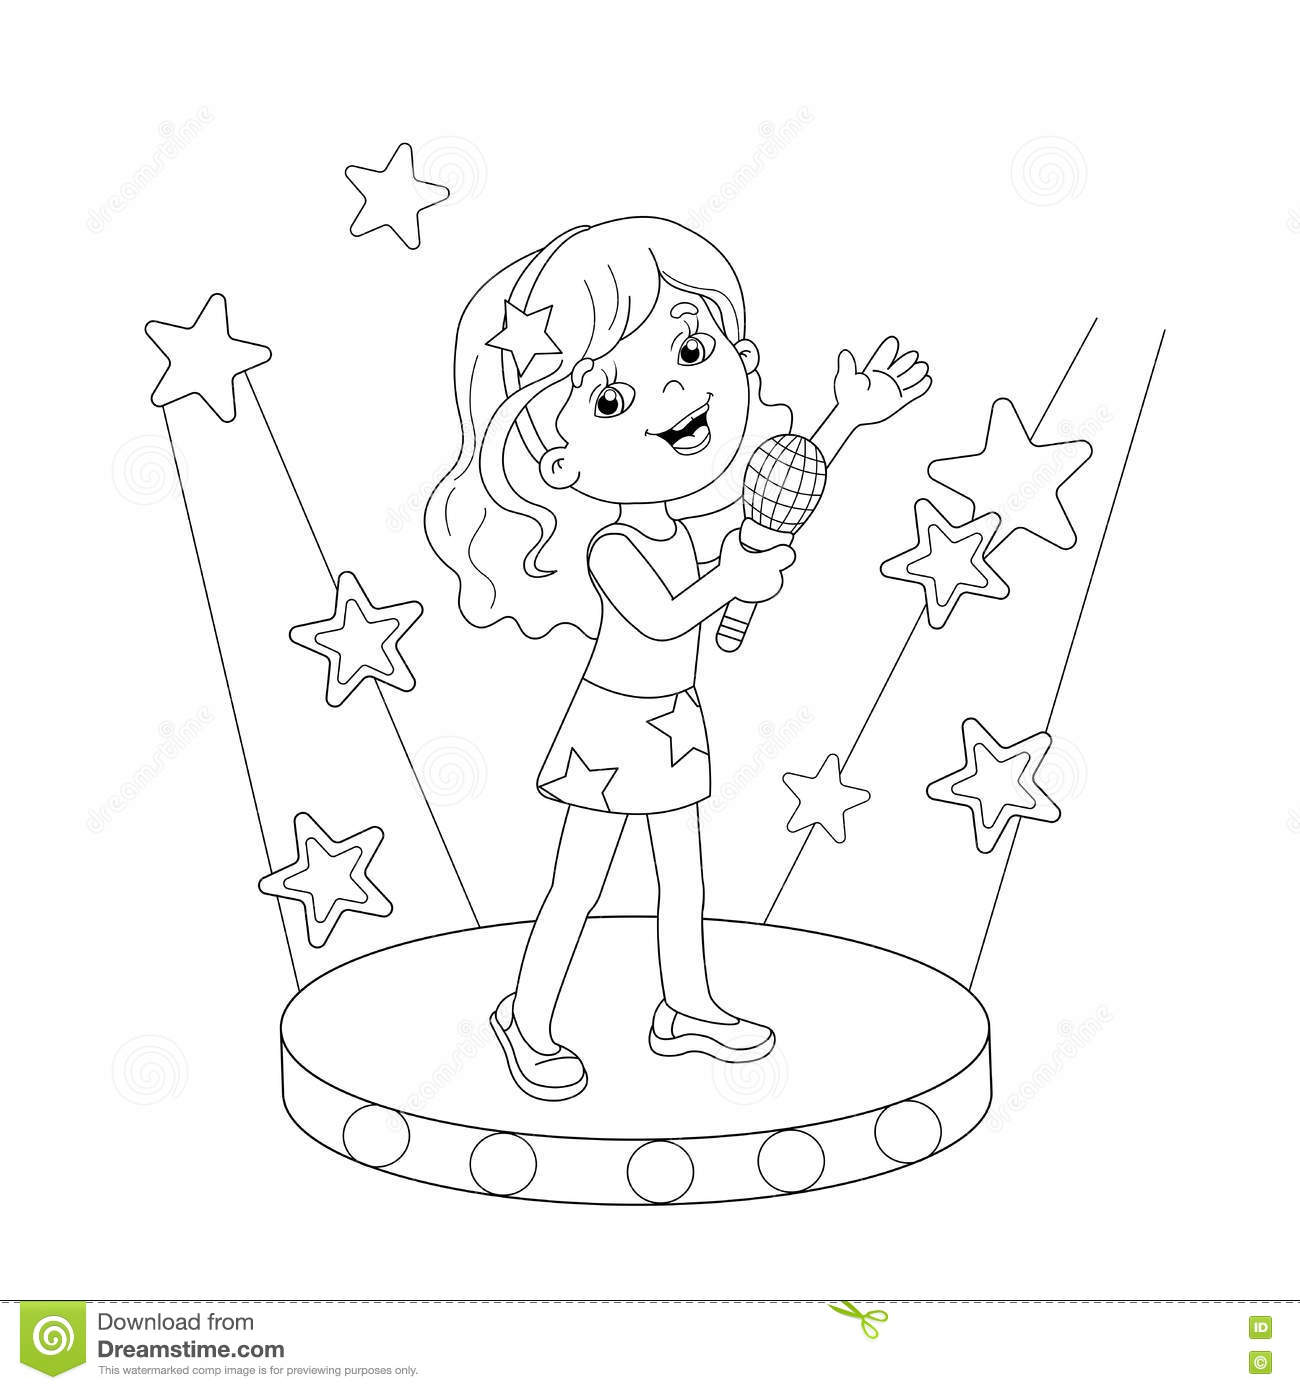 Coloring Page Outline Of Girl Singing A Song On Stage